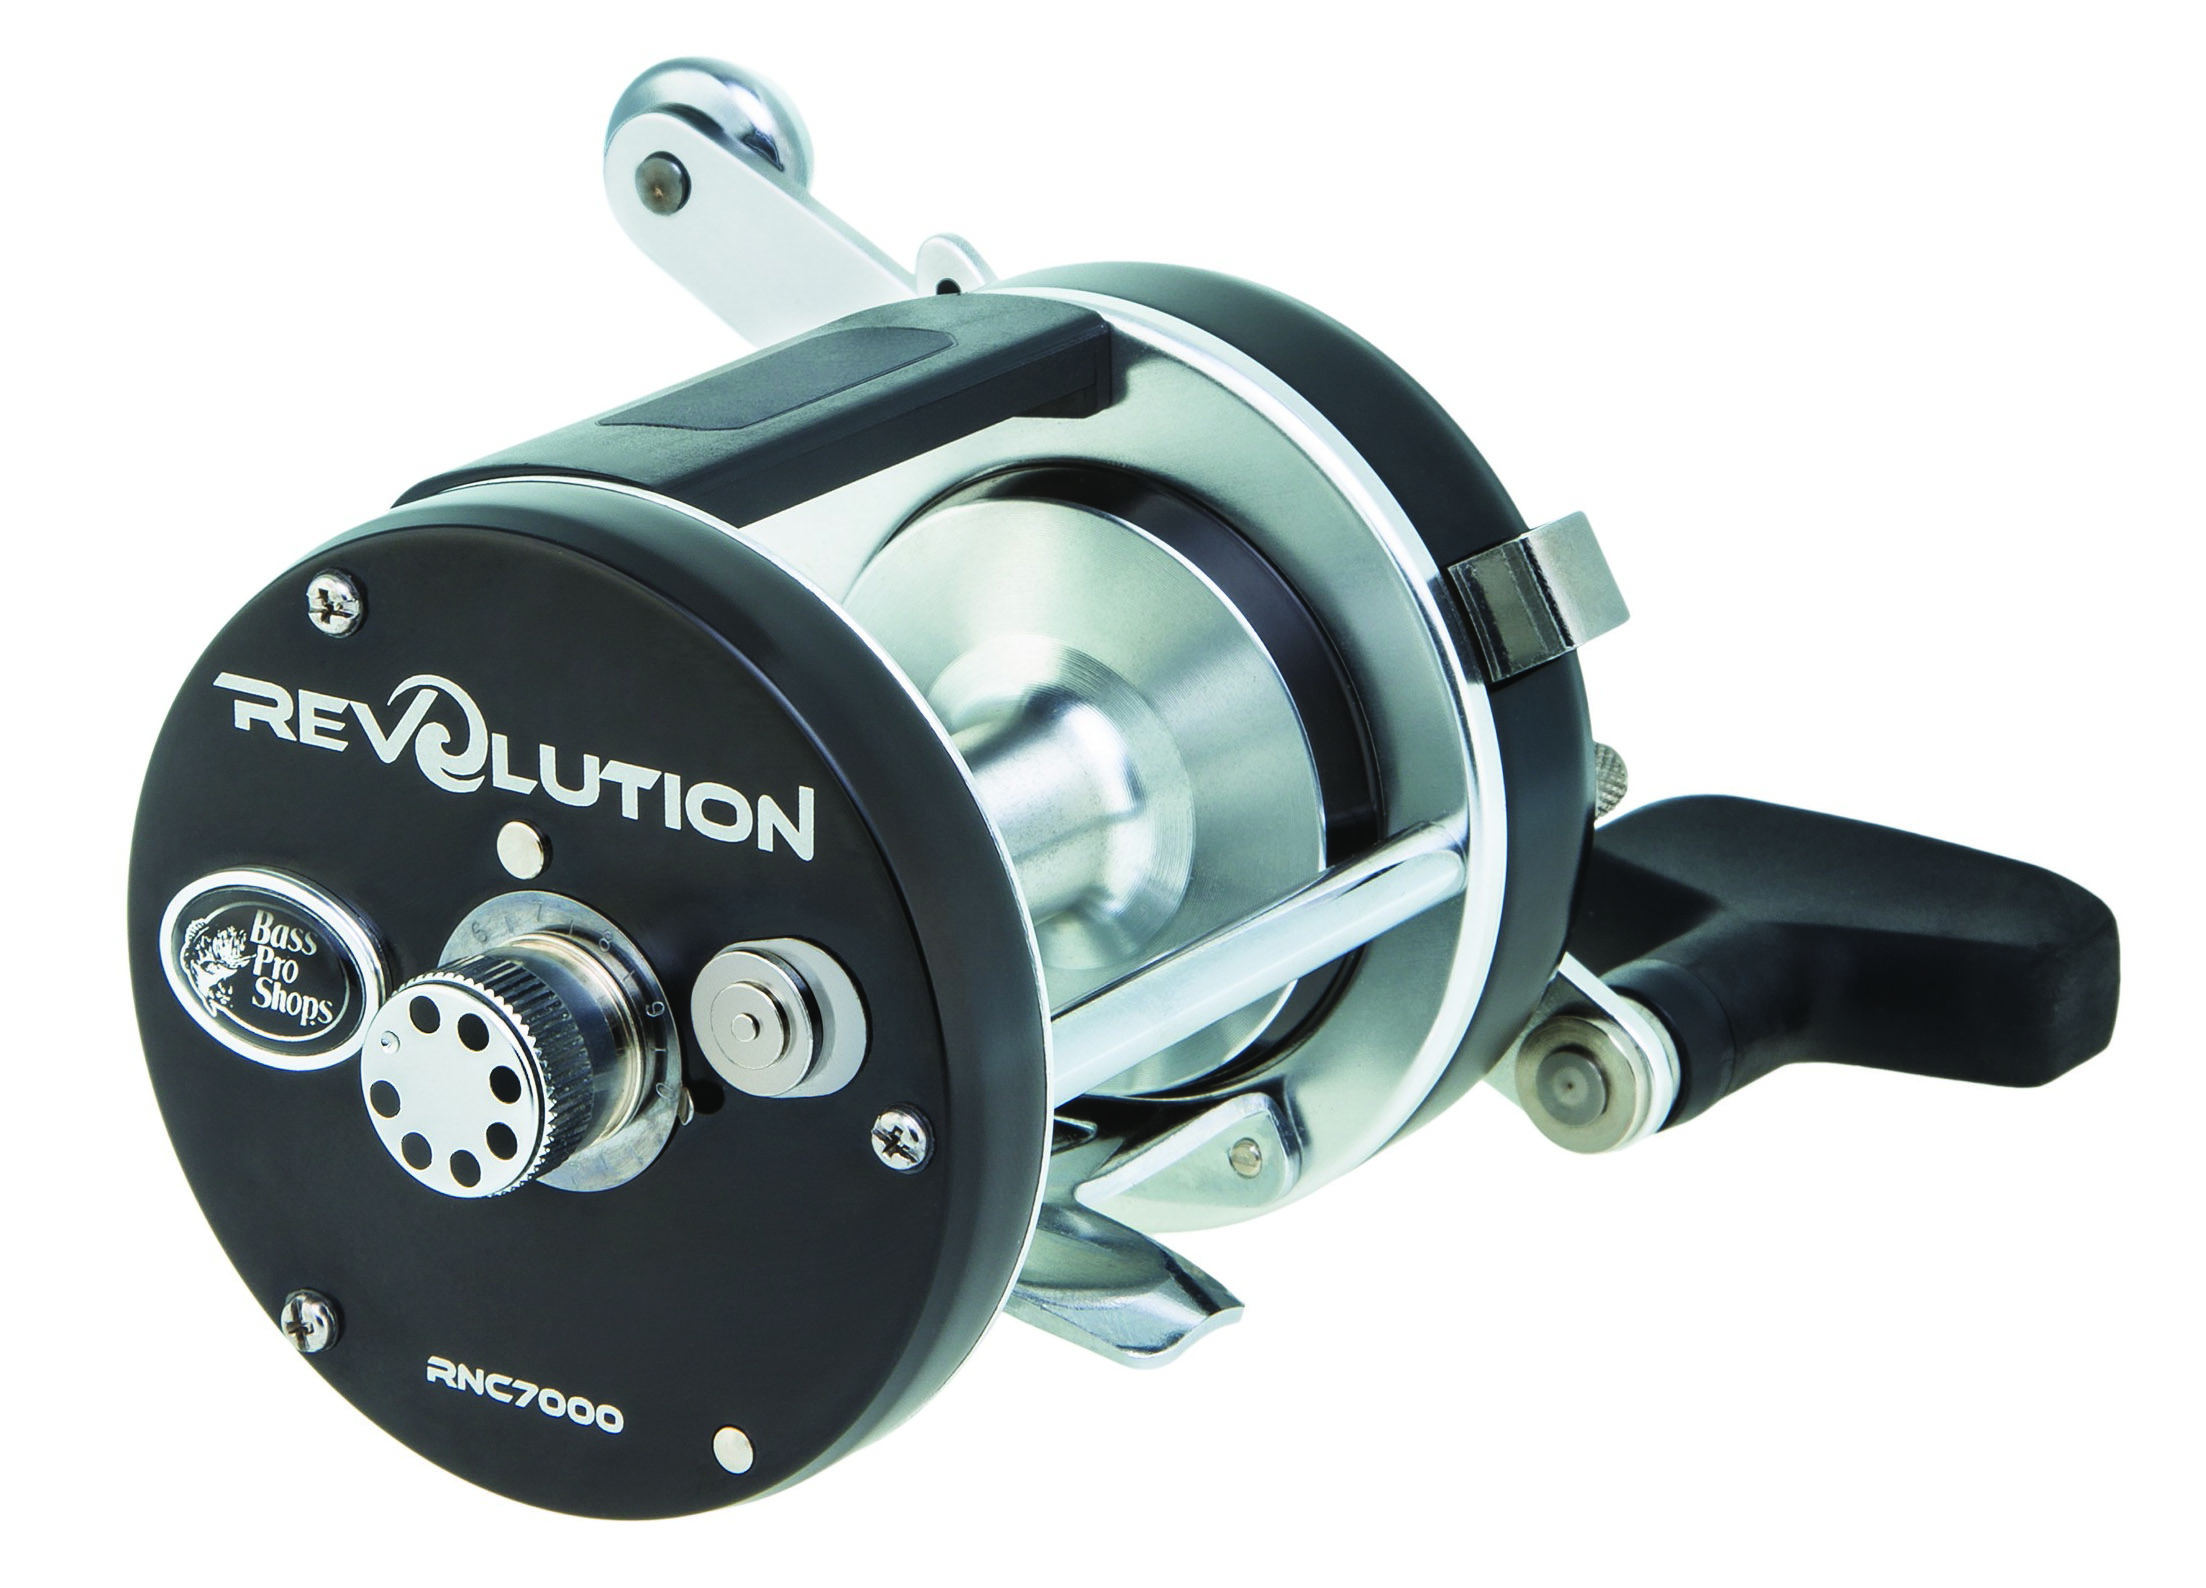 Bass pro shops news releases revolution 7000 casting for Bass pro shop fishing reels